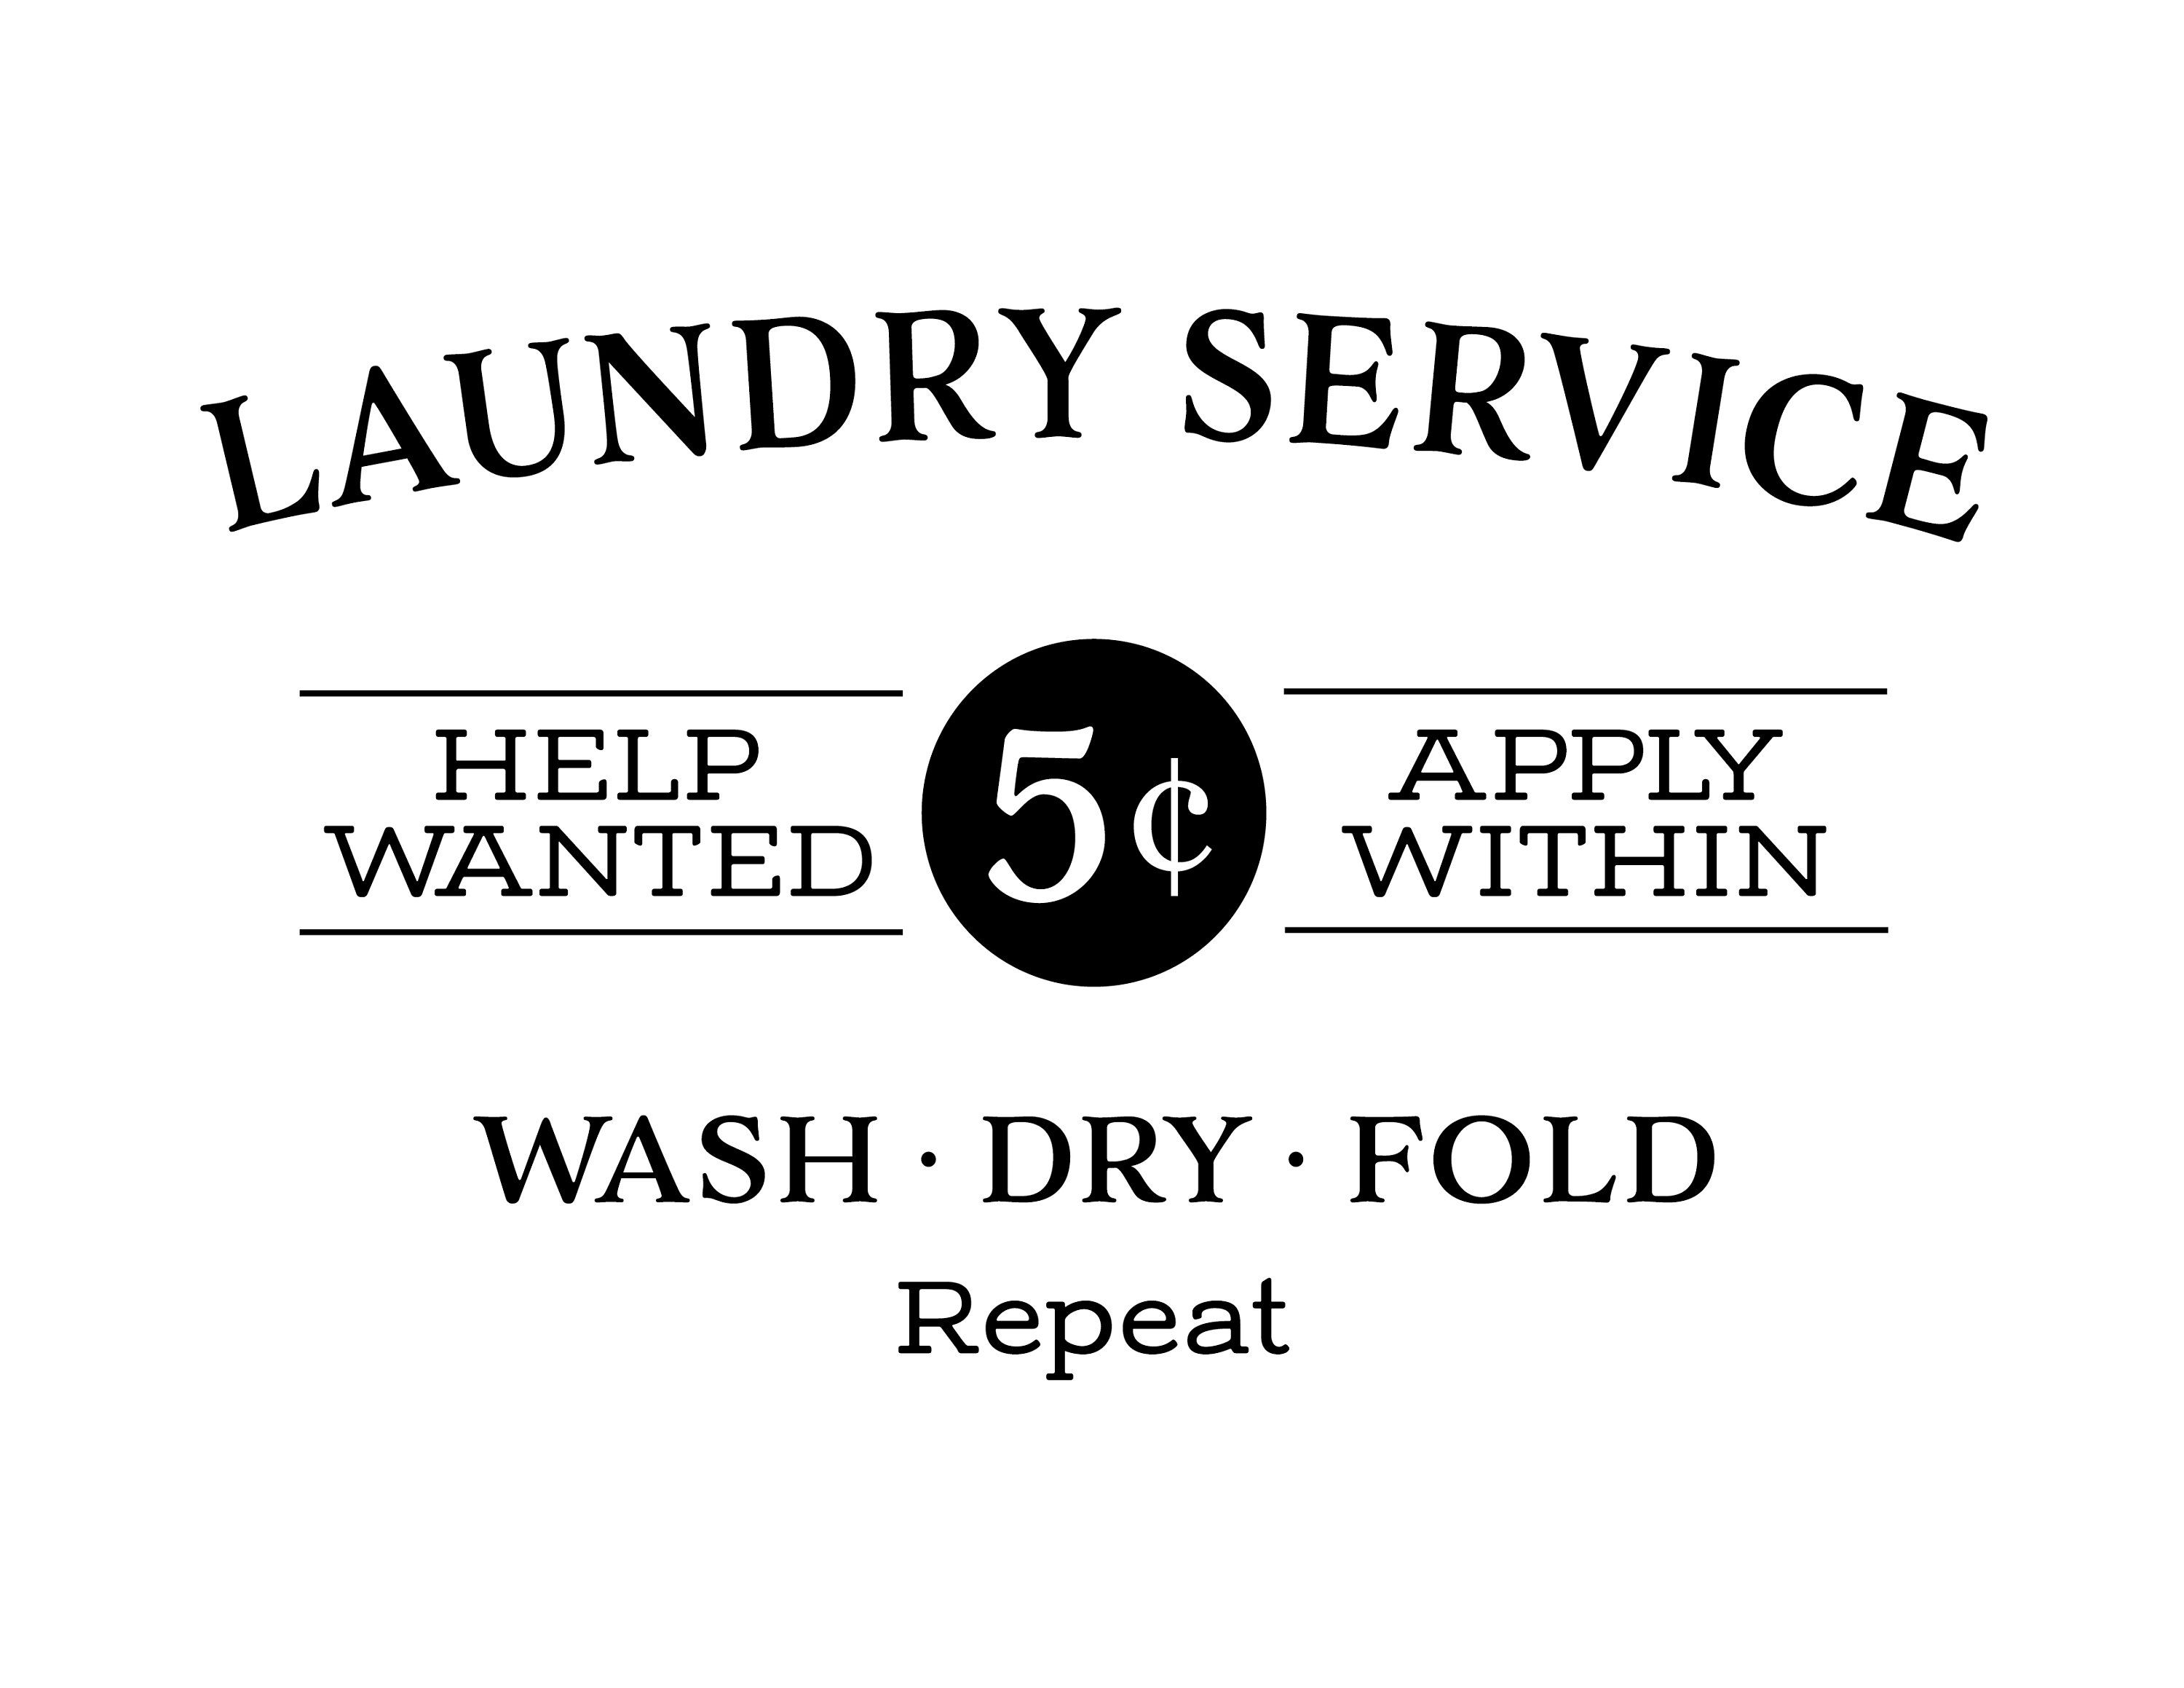 Laundry service help needed apply within wash dry fold